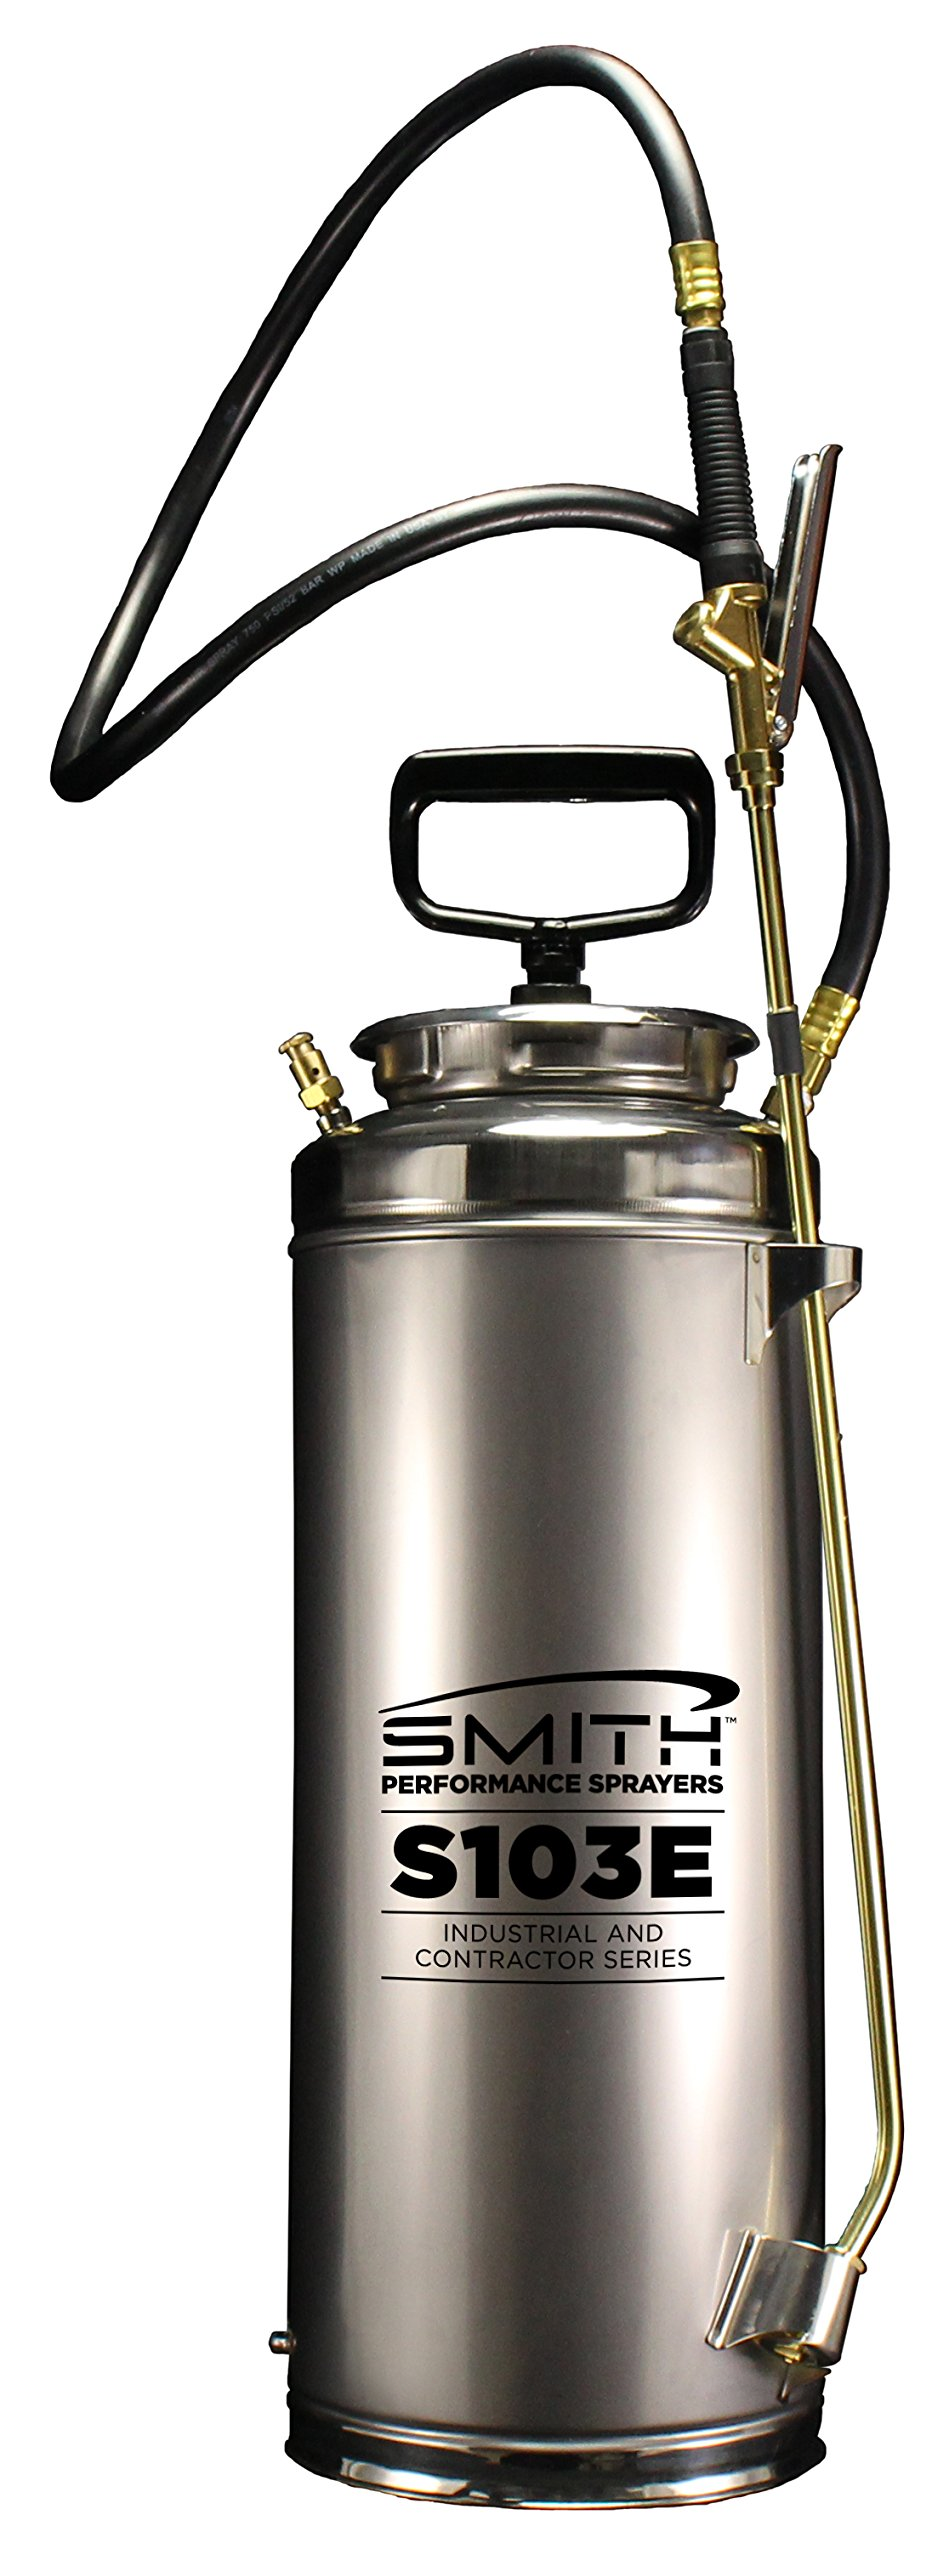 Smith Performance Sprayers S103E 3.5-Gallon Stainless Steel Concrete Sprayer for Solvent or Water-Based Cleaners, Sealers, Release Agents and Curing Compounds